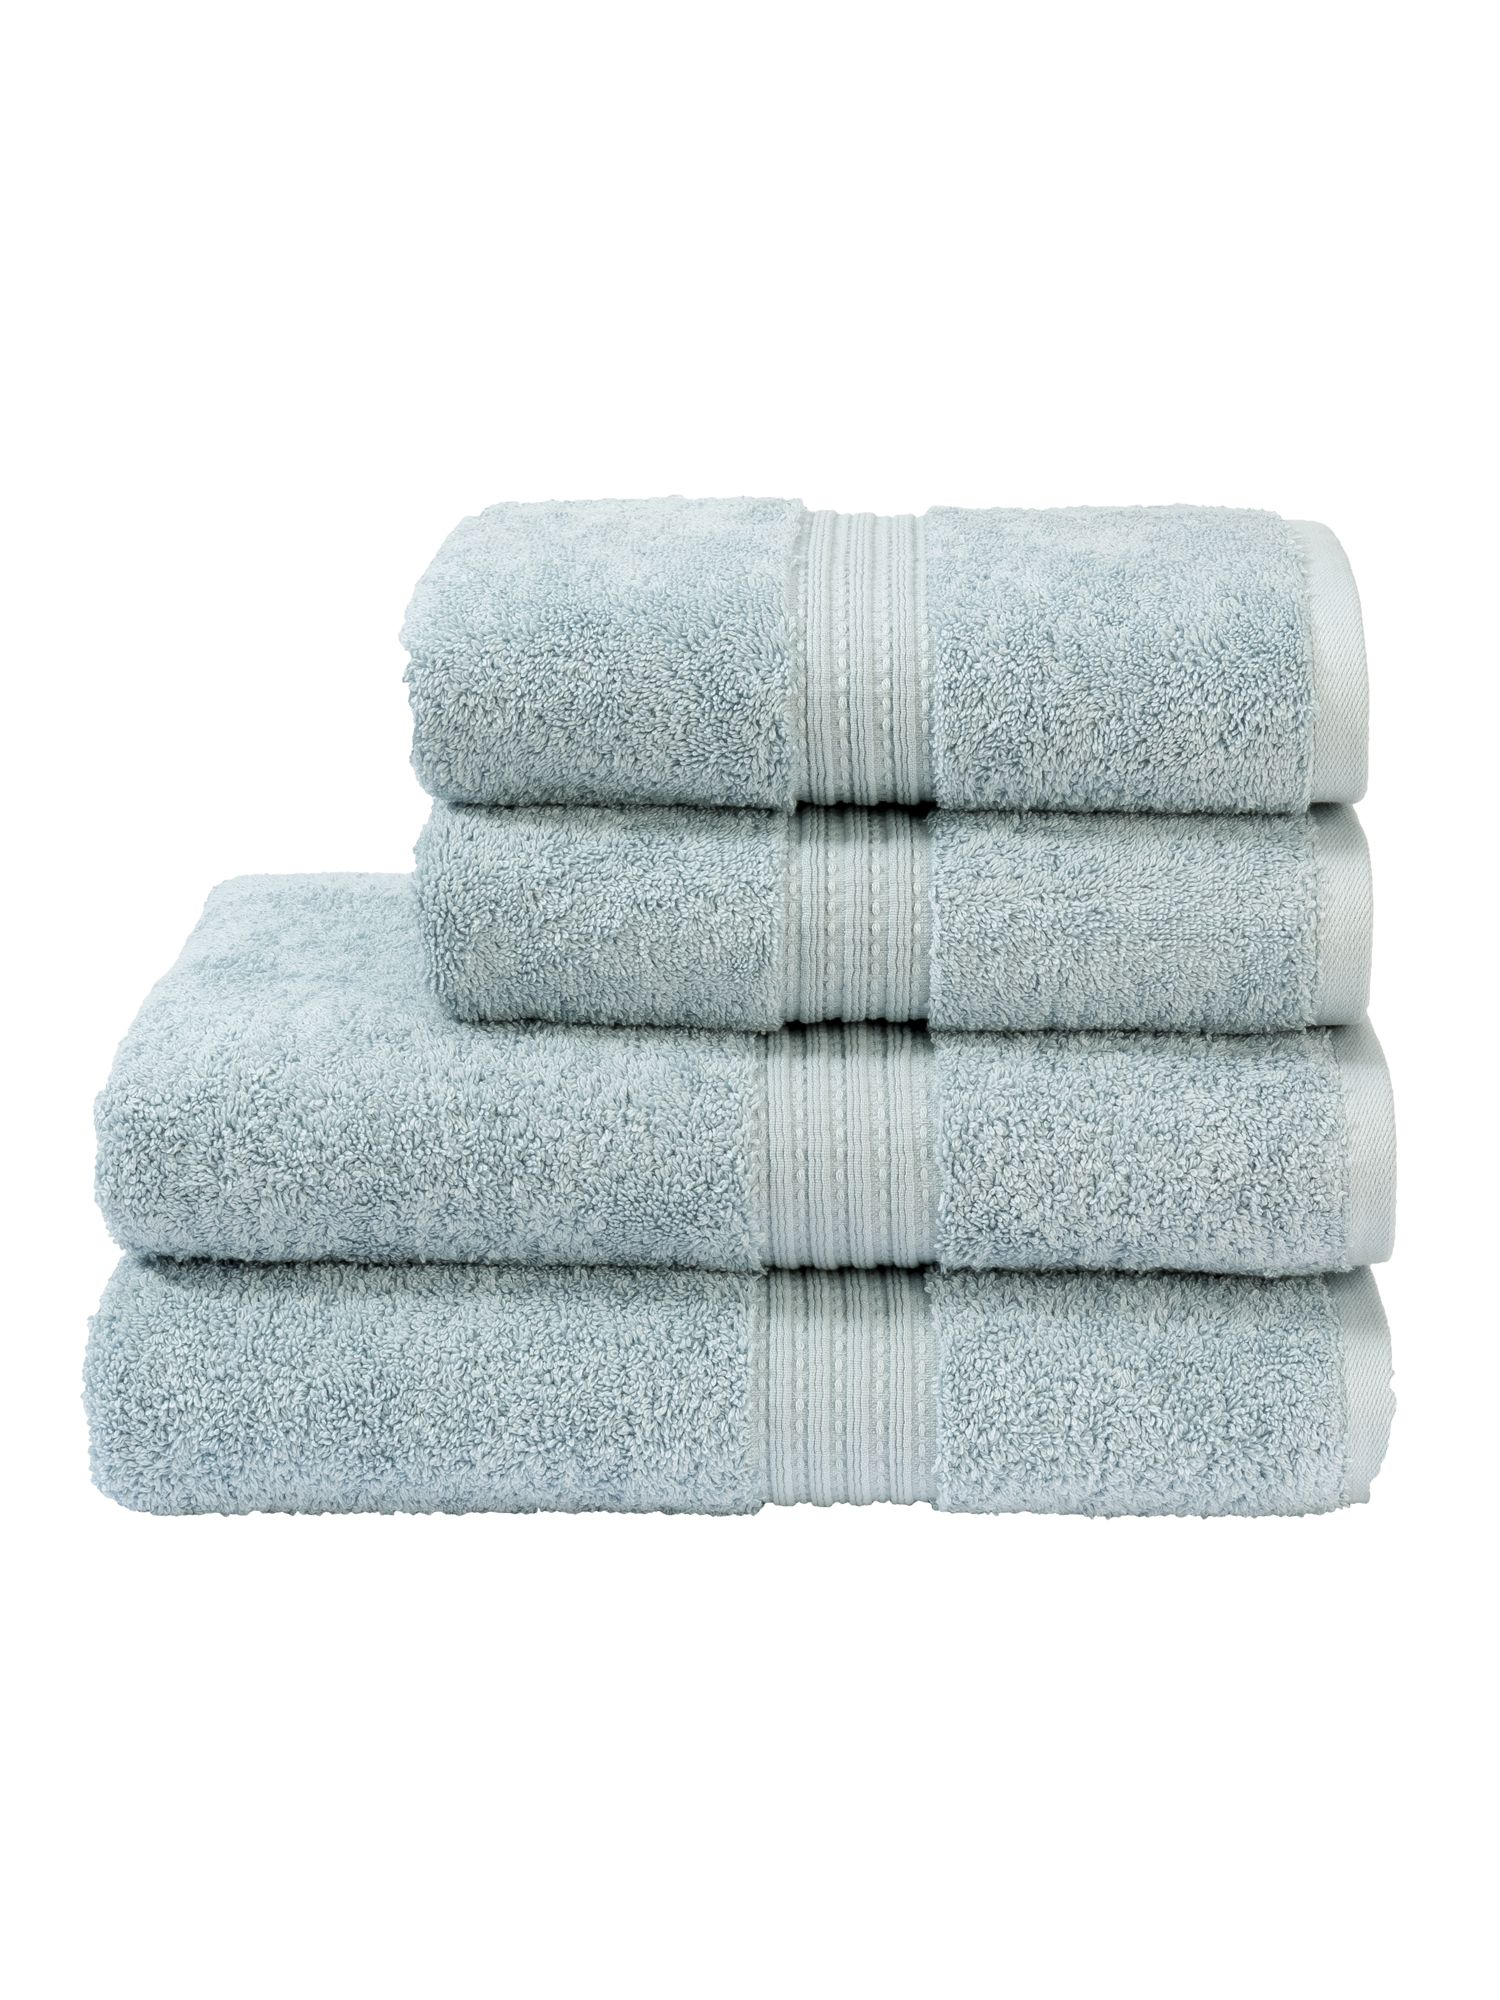 Plush towels in pastel blue